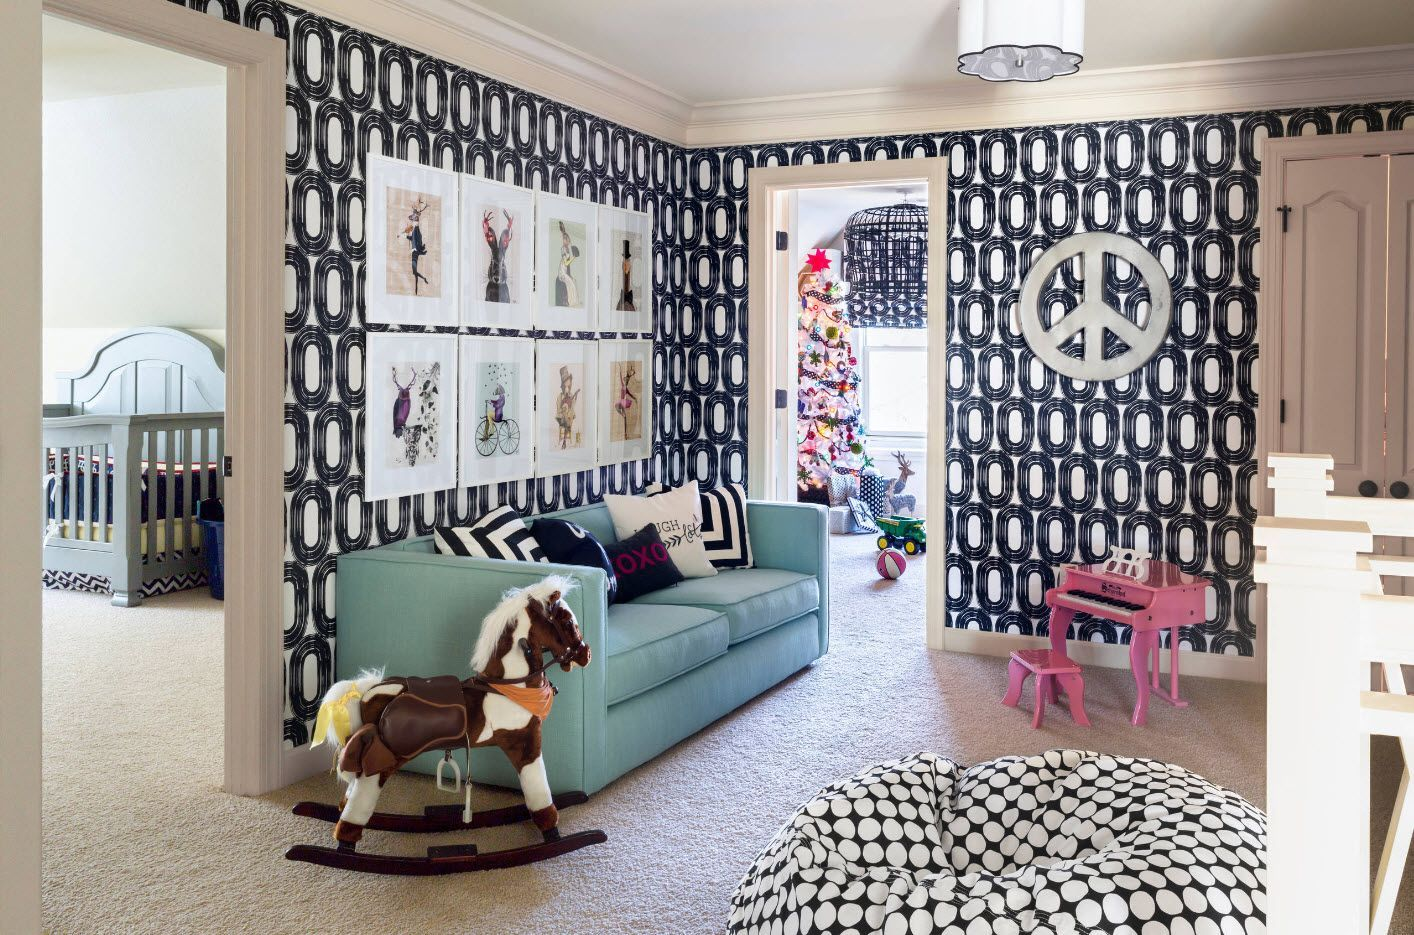 Kitsch styled interior for the child